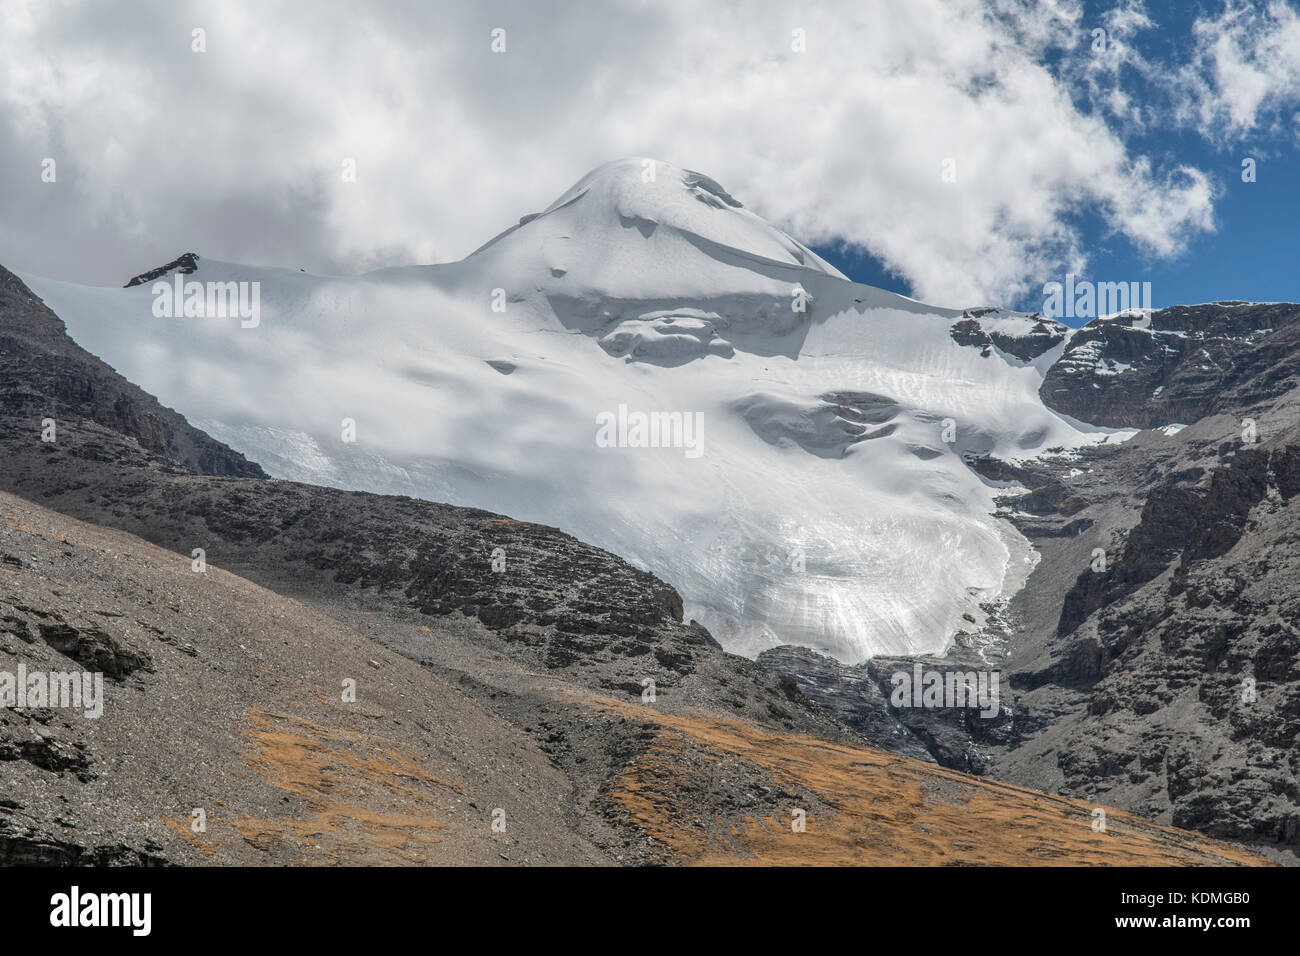 Glacier from Karola Pass, Shannan, Tibet, China - Stock Image